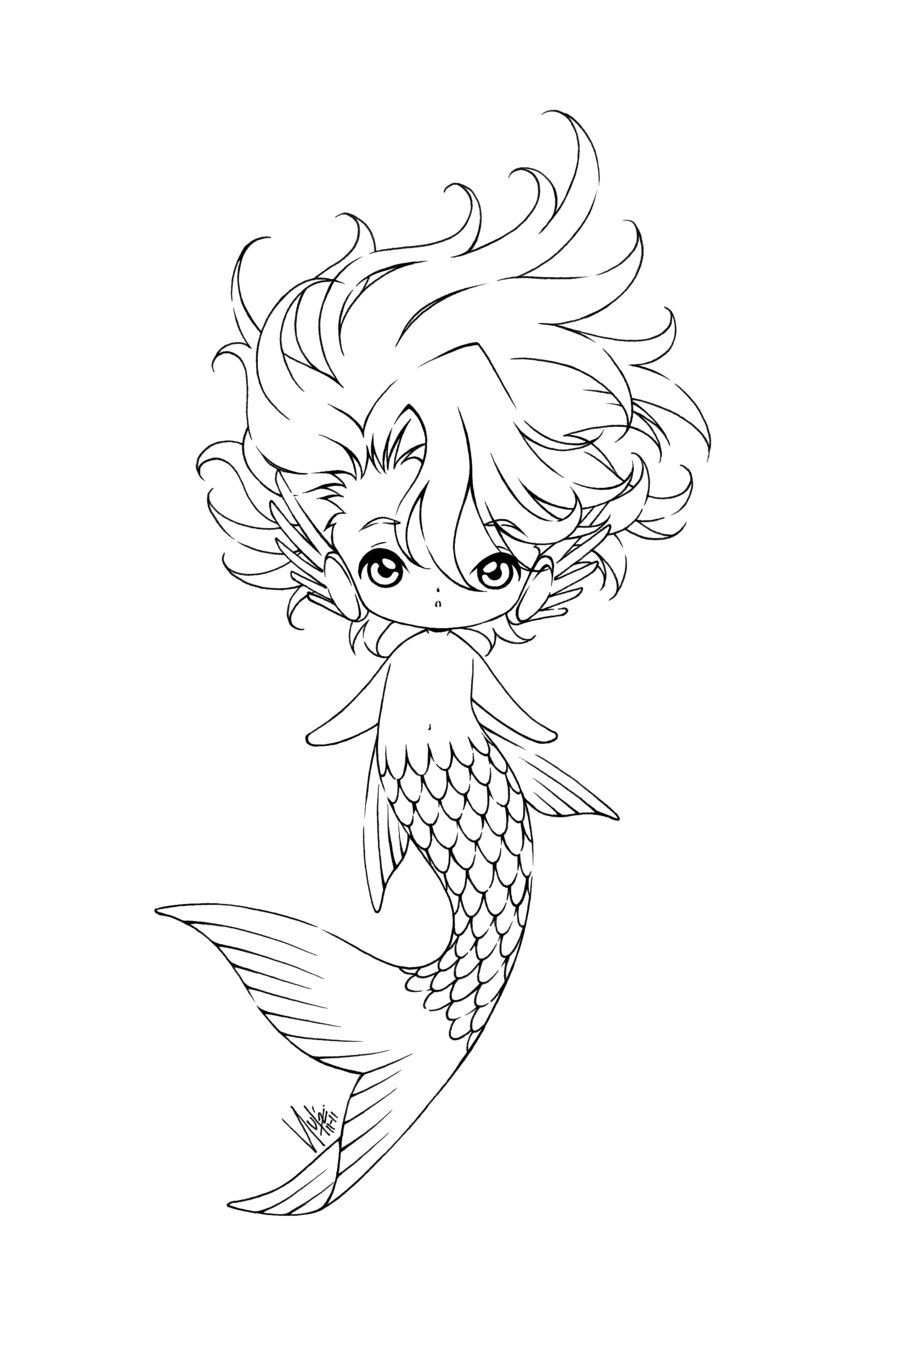 cute mermaid coloring pages - cute mermaid coloring page malvorlagen pinterest